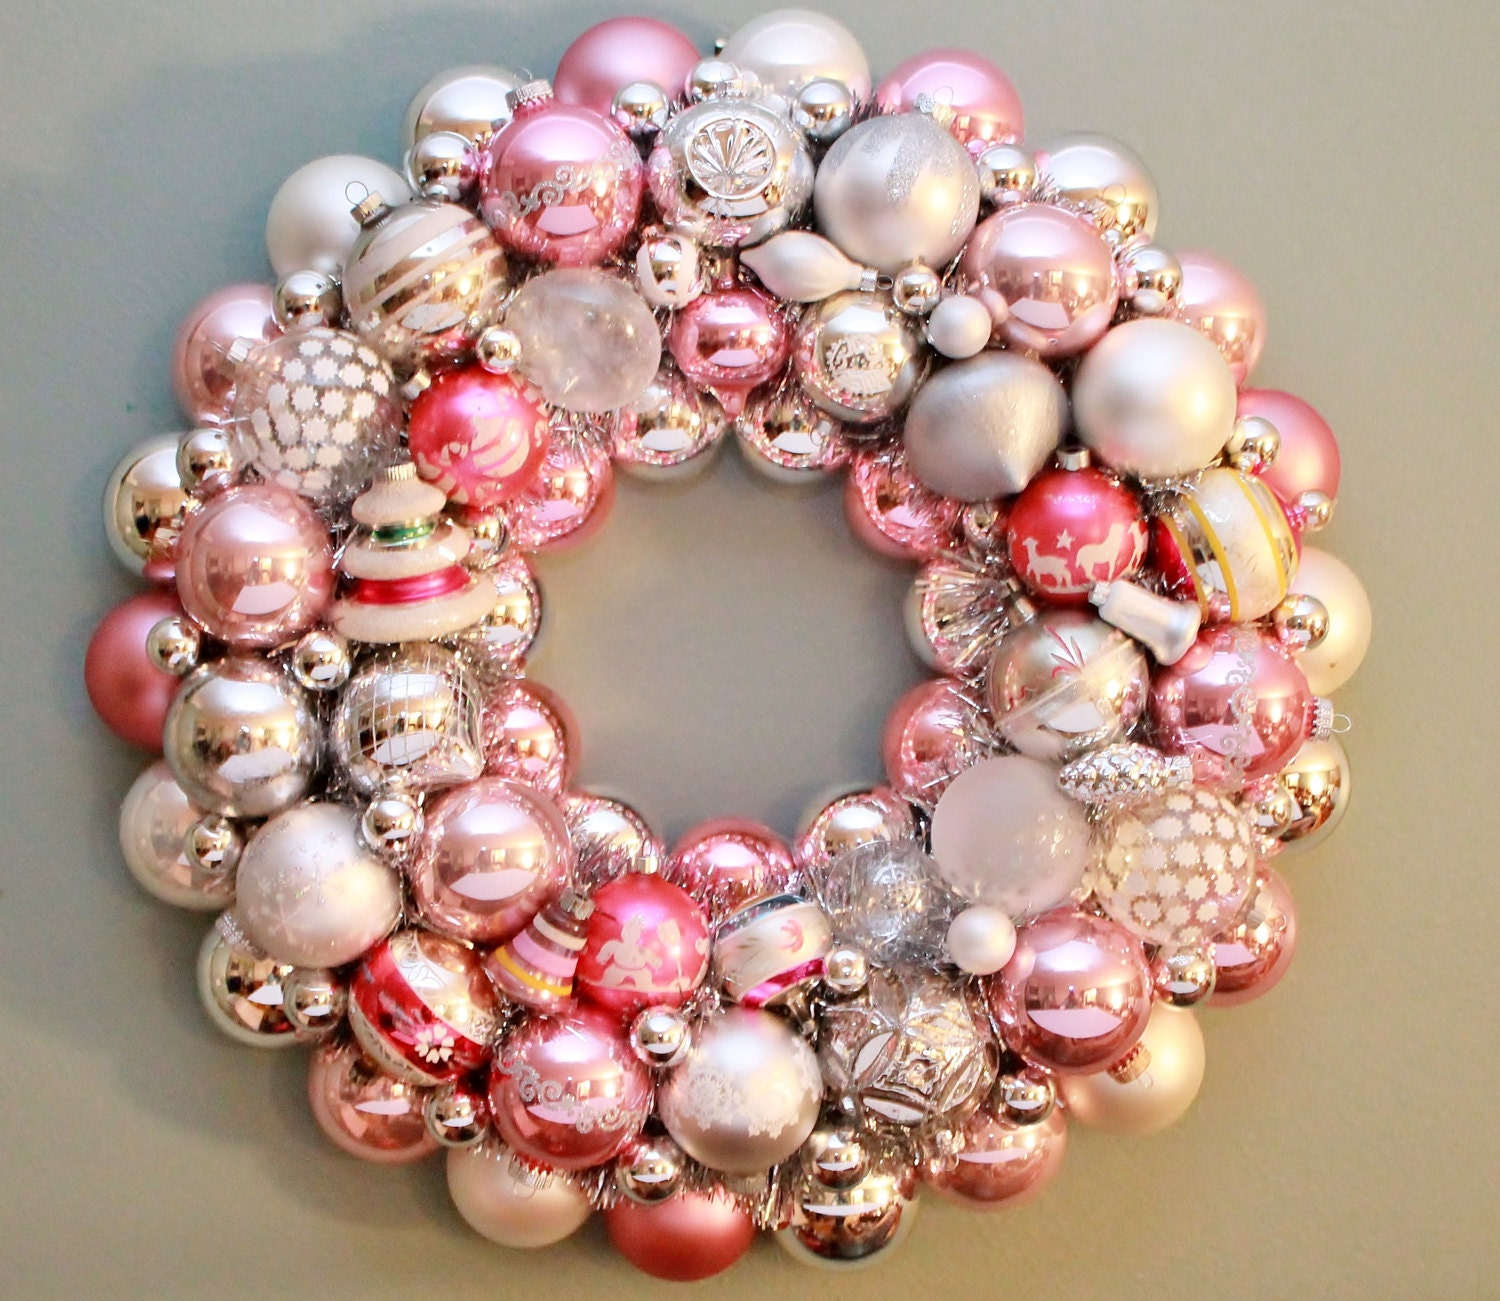 Pink Christmas Wreath Vintage Ornaments